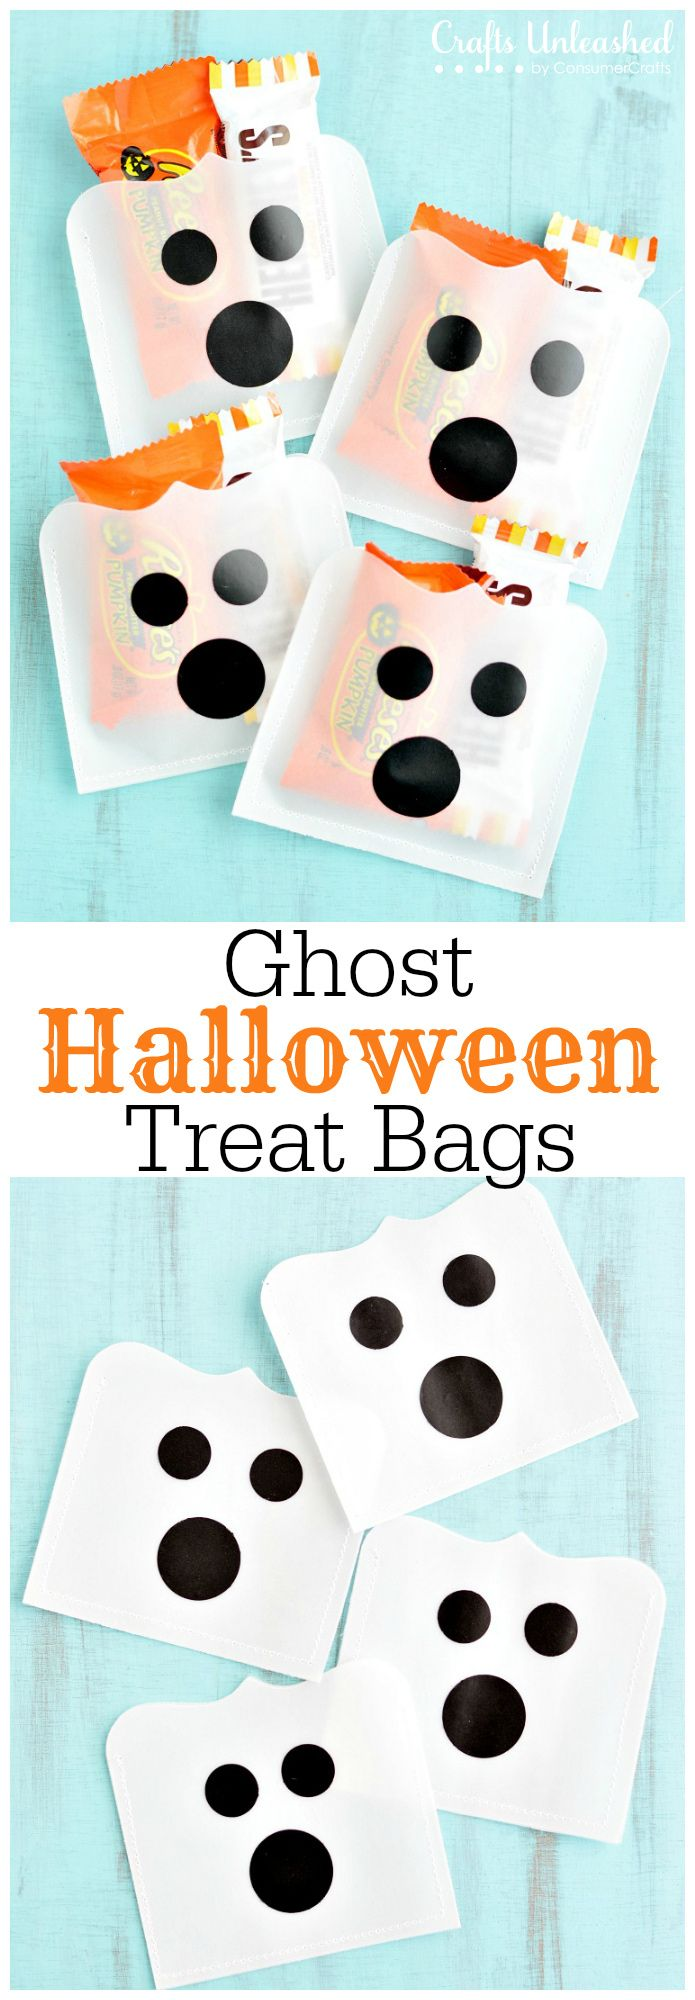 DIY Ghost Treat Holders for Halloween (created using Silhouette vellum & a cutting machine) on Crafts Unleashed